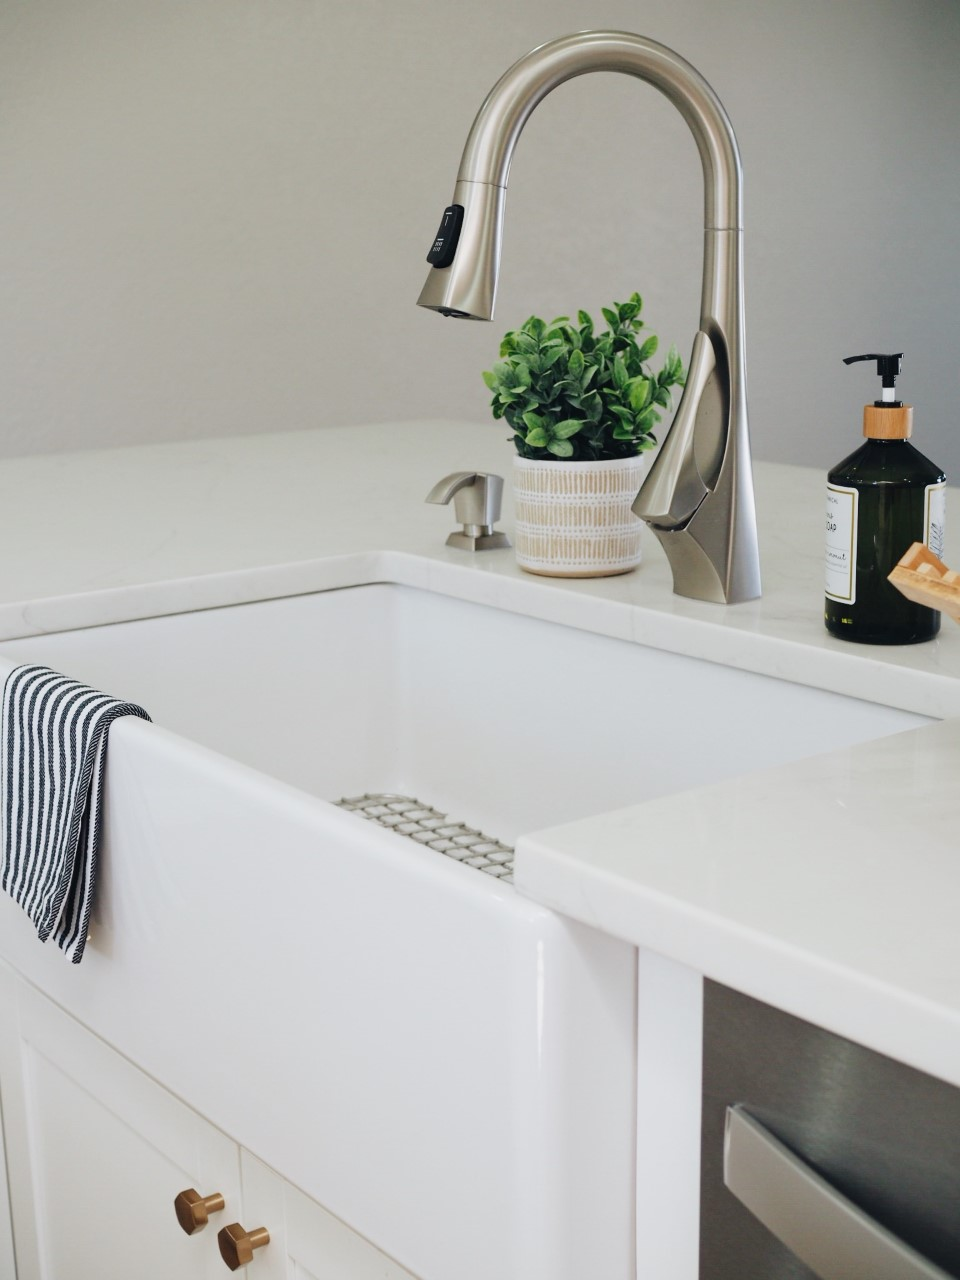 white kitchen home renovation kitchen renovation farmhouse sink single basin sink brass hardware white cabinets double island kitchen